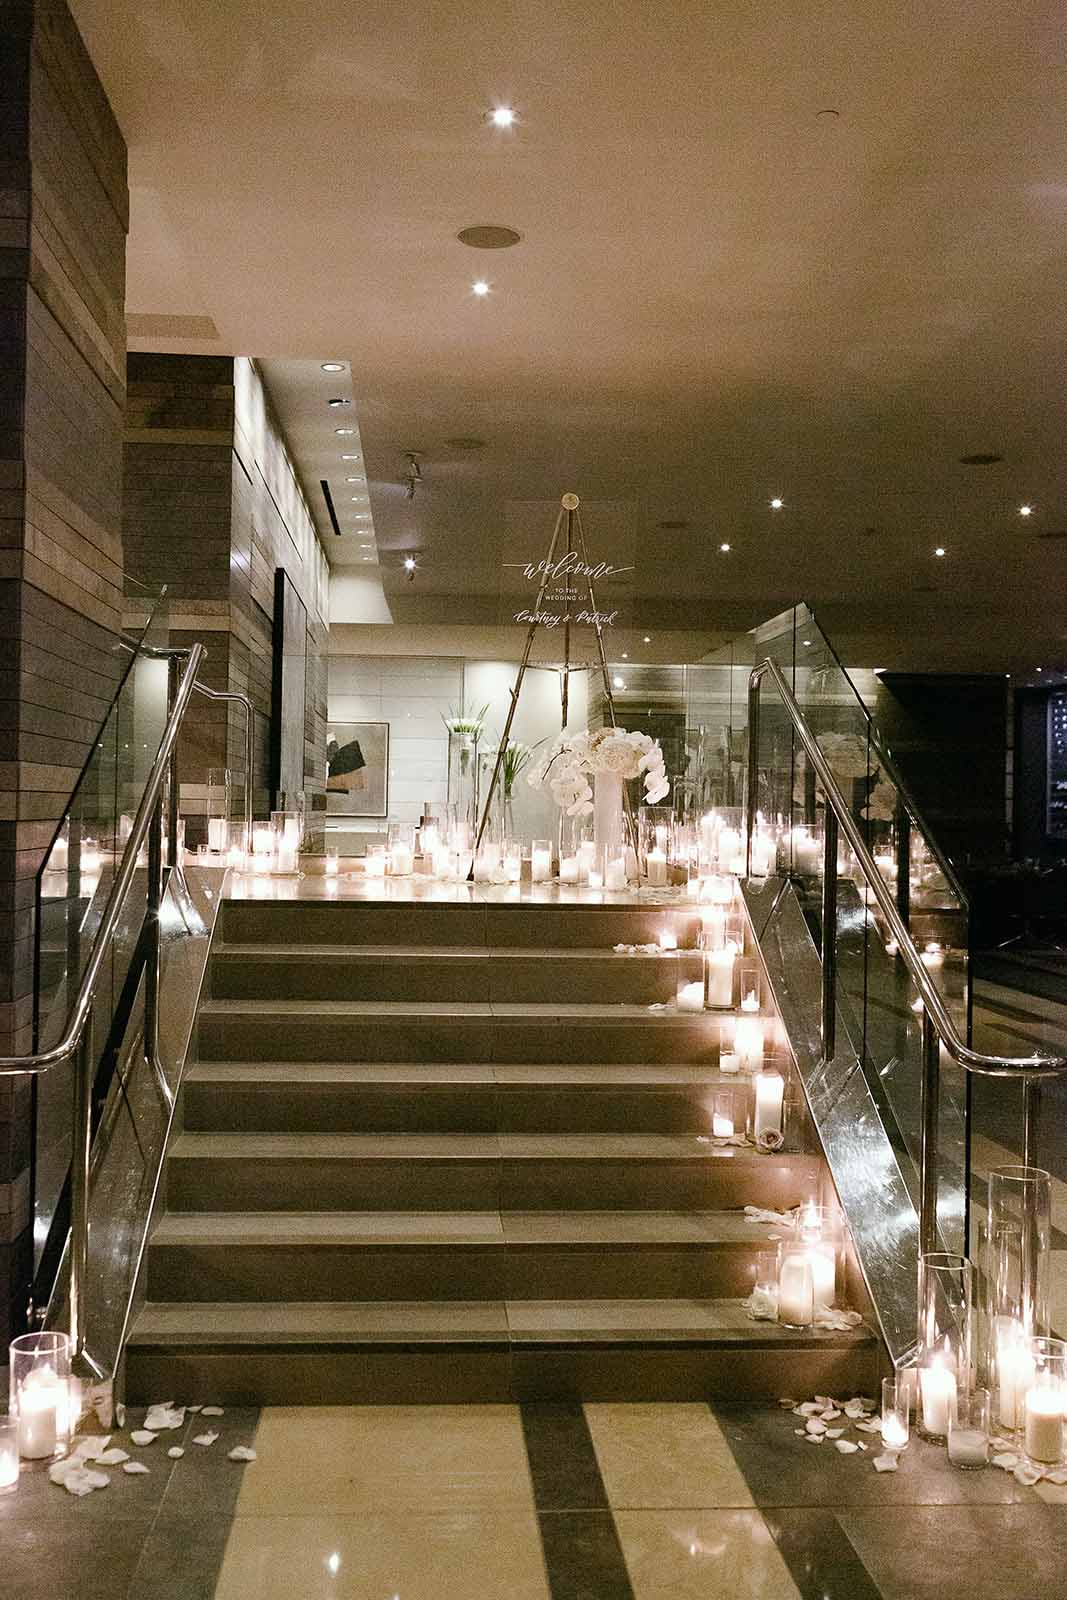 Four Seasons Seattle staircase lined with white hurricane candles and floral leading to the ballroom wedding | Flora Nova Design